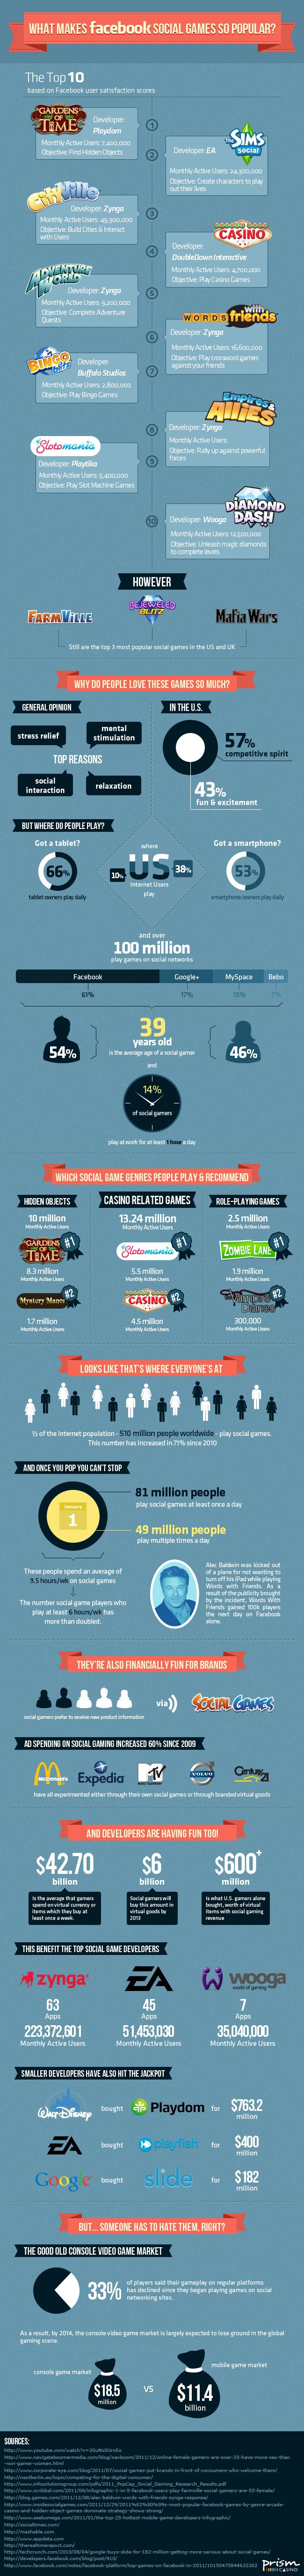 What Makes Social Games So Popular [infographic]